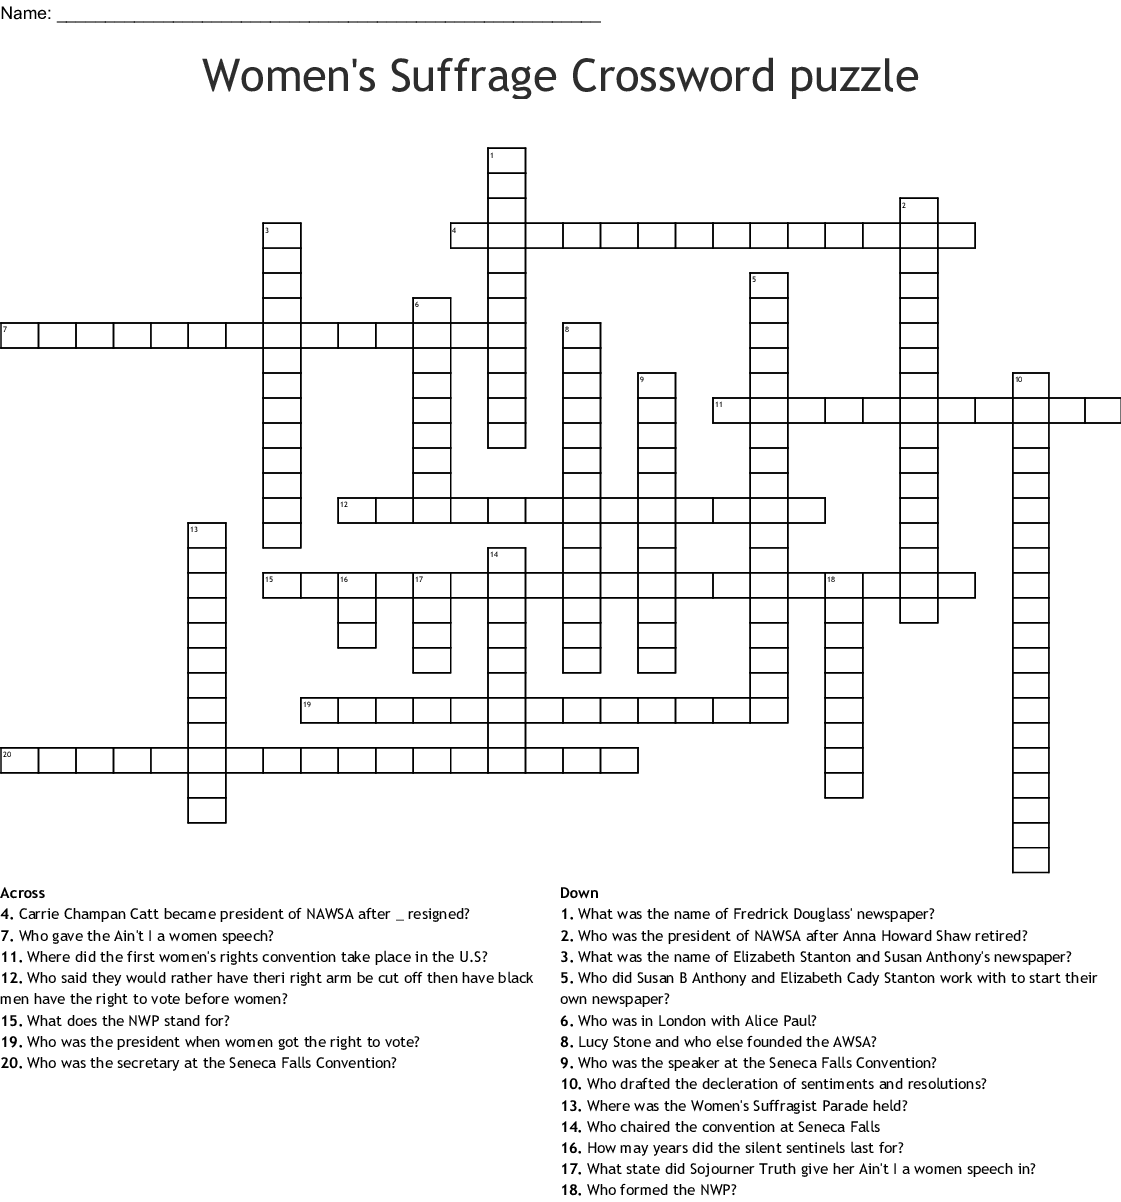 WOMEN'S SUFFRAGE MOVEMENT Word Search - WordMint